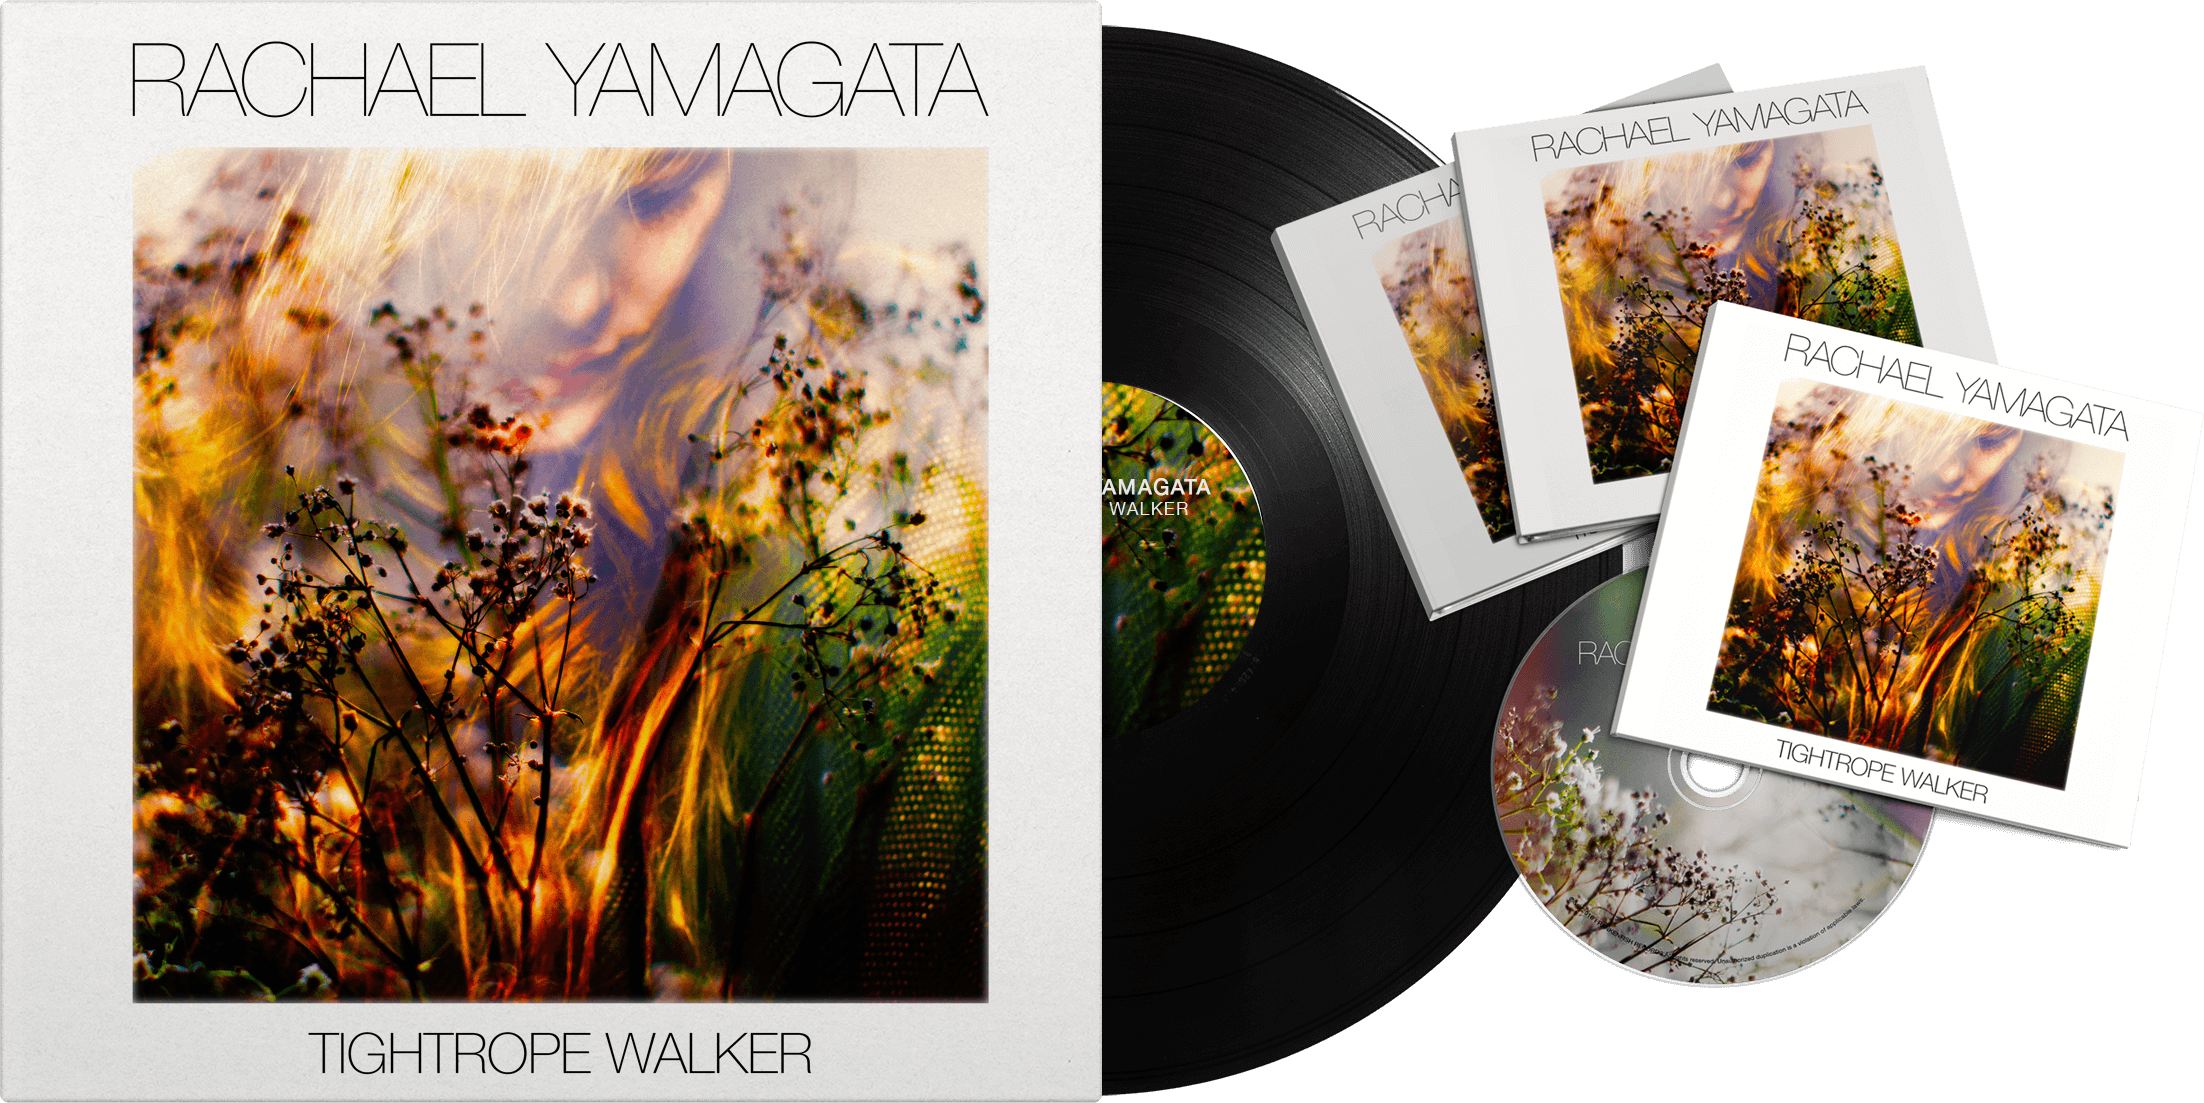 Available on CD, Vinyl, and as Digital Download